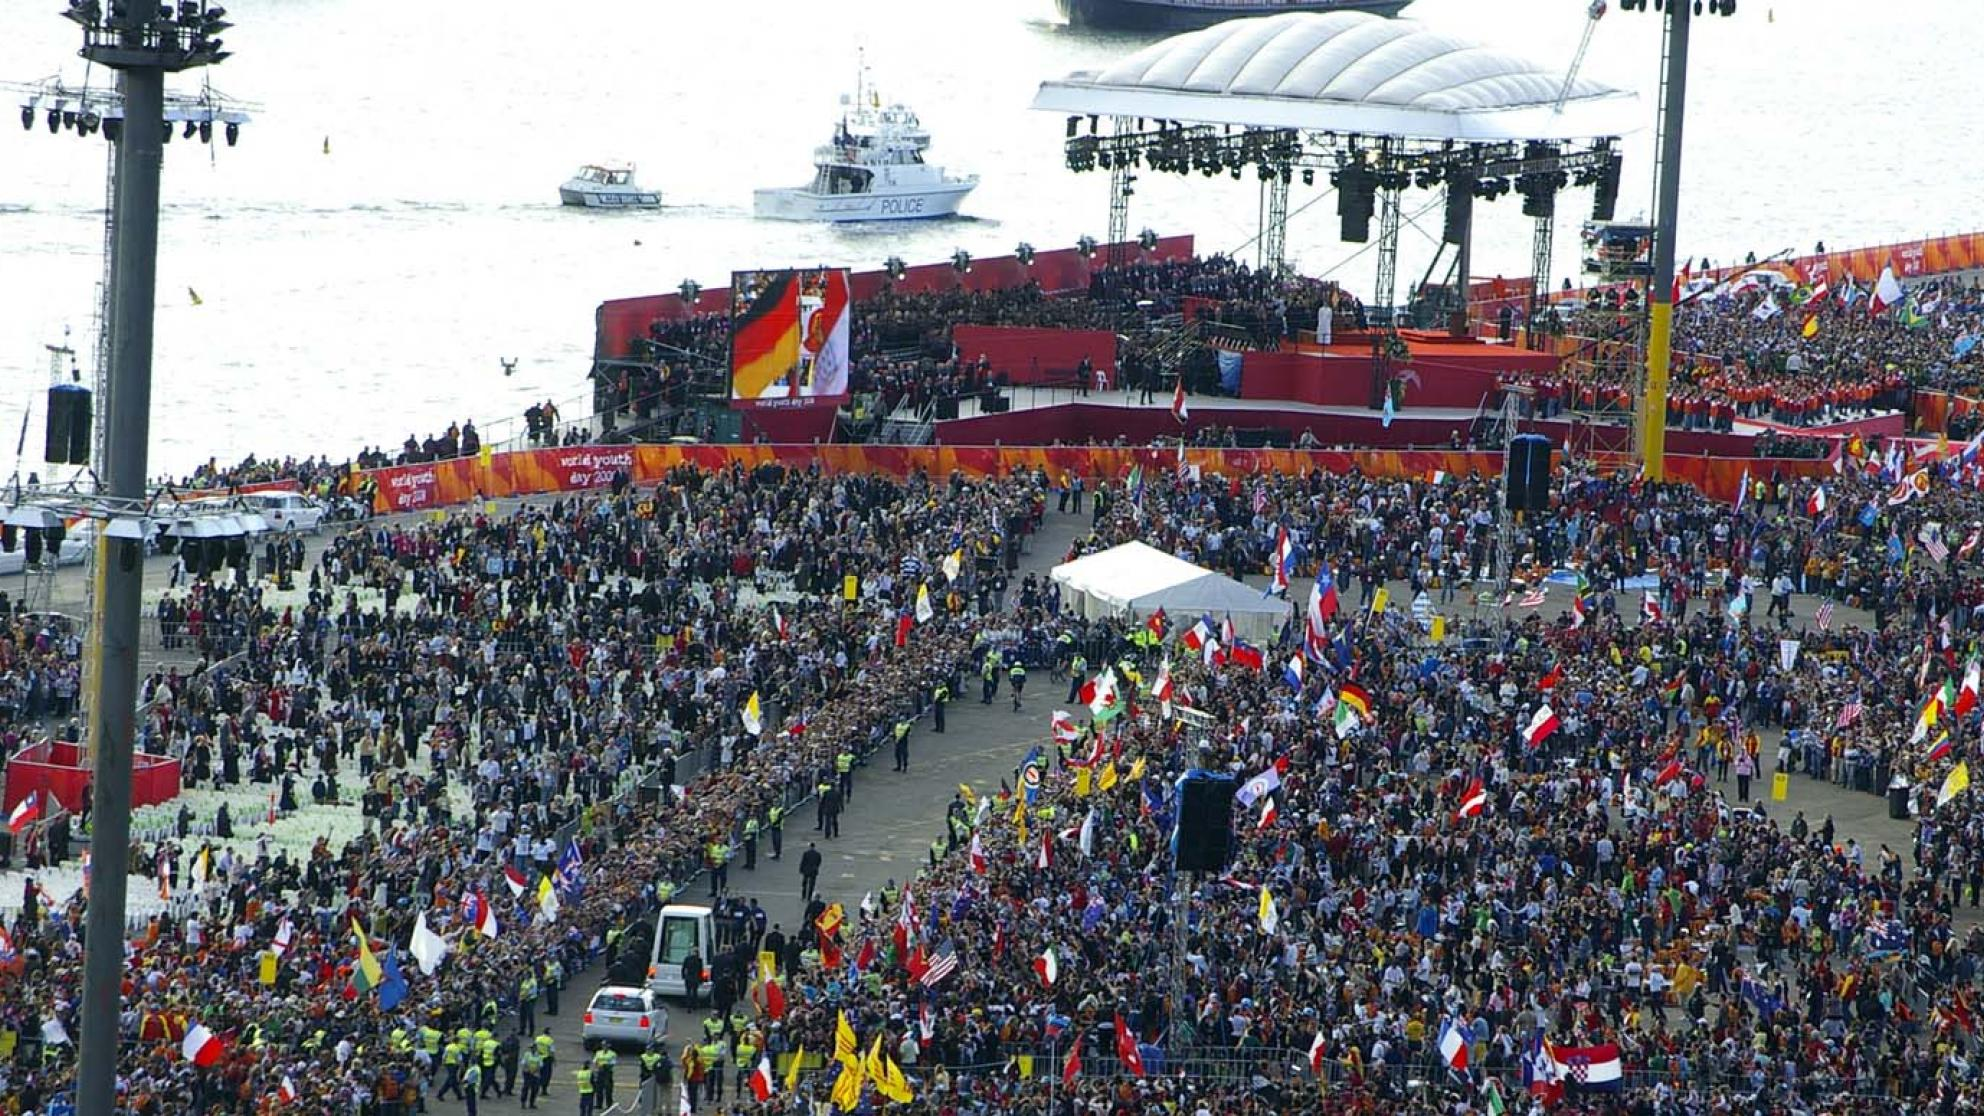 A large crowd of people at World Youth Day at Barangaroo, Sydney in July 2008.